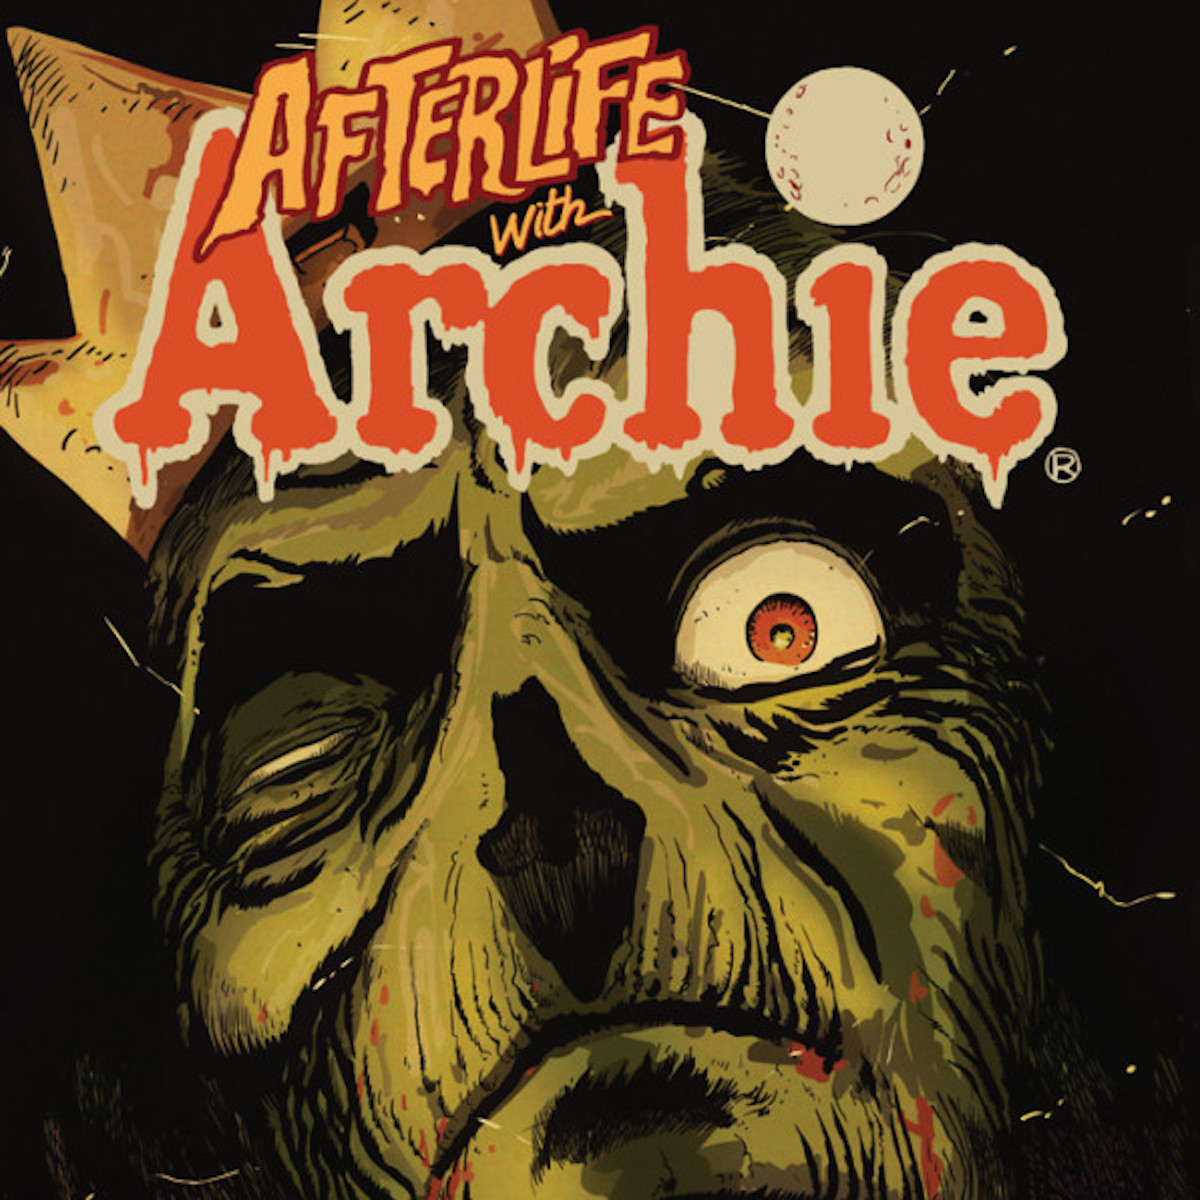 66 | Afterlife with Archie